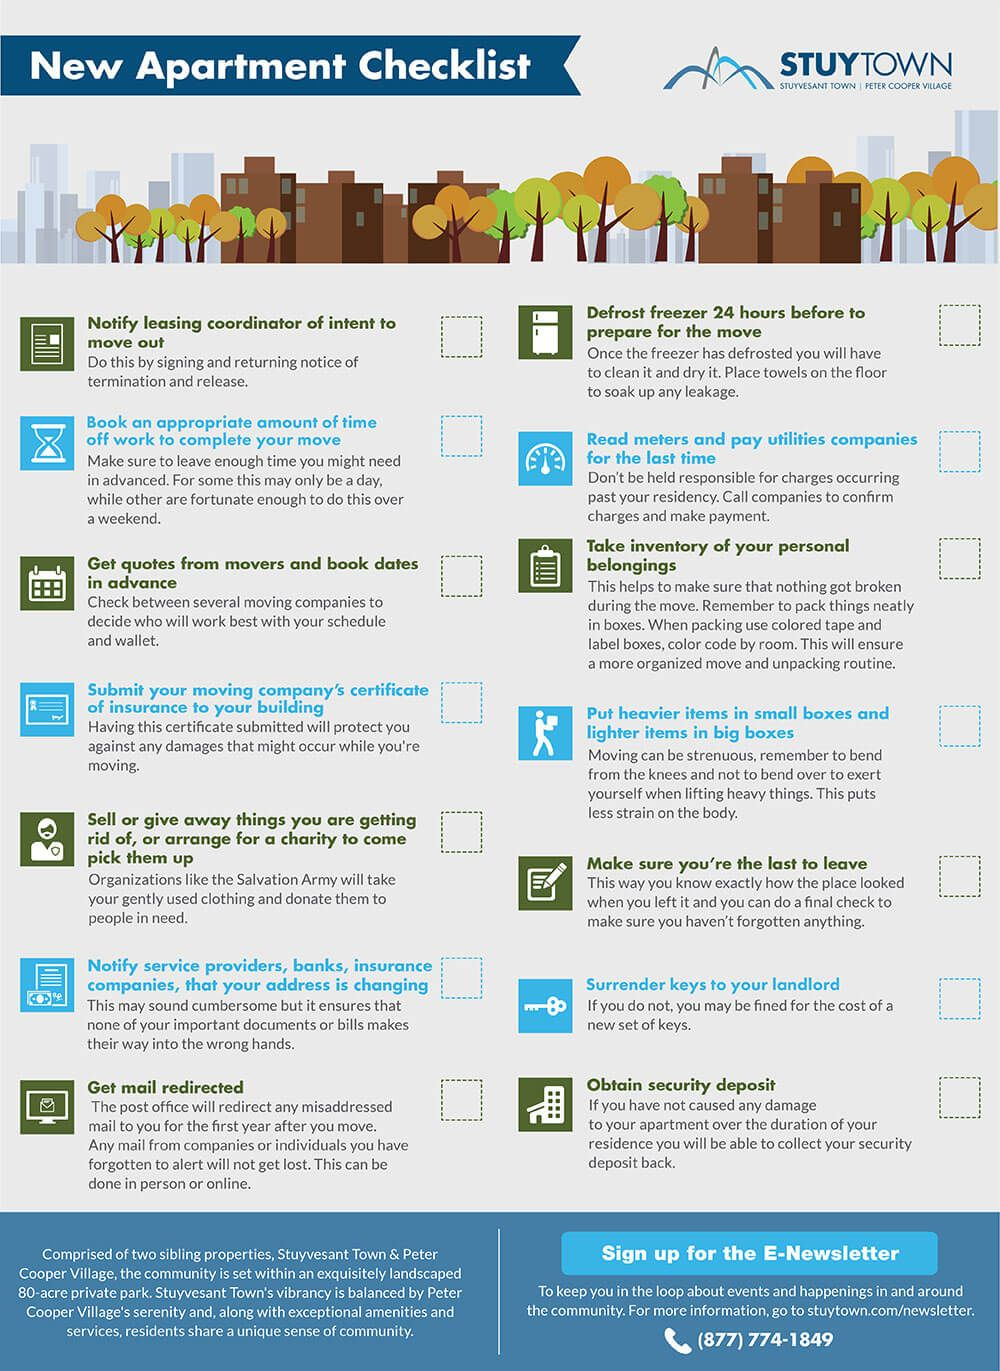 New Apartment Moving Checklist Infographic  Wwa